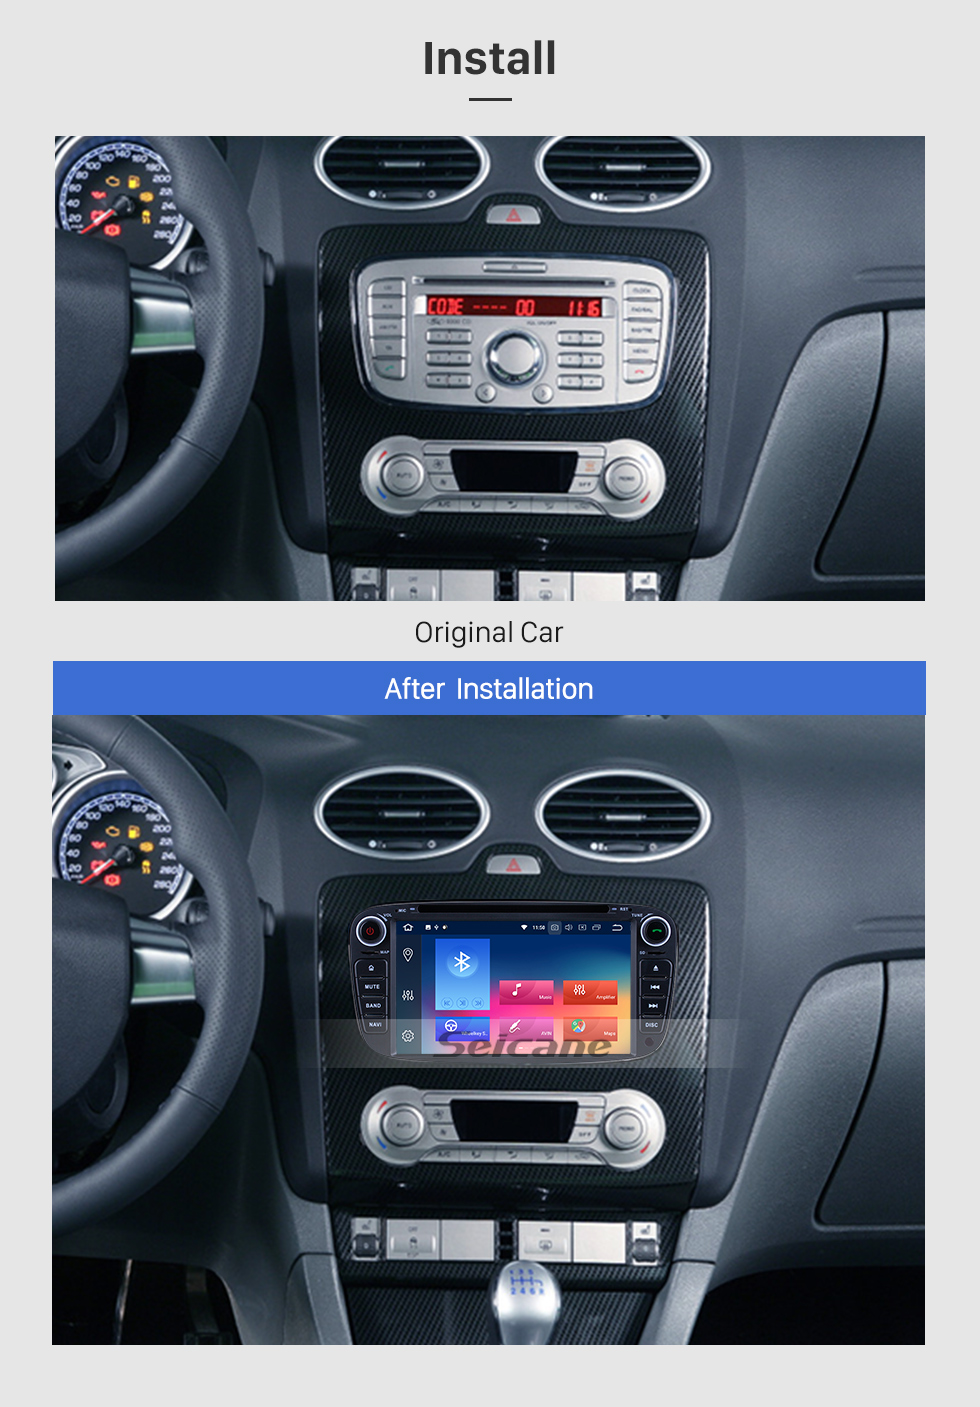 Seicane Android 9.0 2008 2009 2010 FORD S-max Radio GPS Car DVD Player with 3G WiFi Bluetooth Mirror Link OBD2 Backup Camera HD 1080P Video Steering Wheel Control MP3 AUX